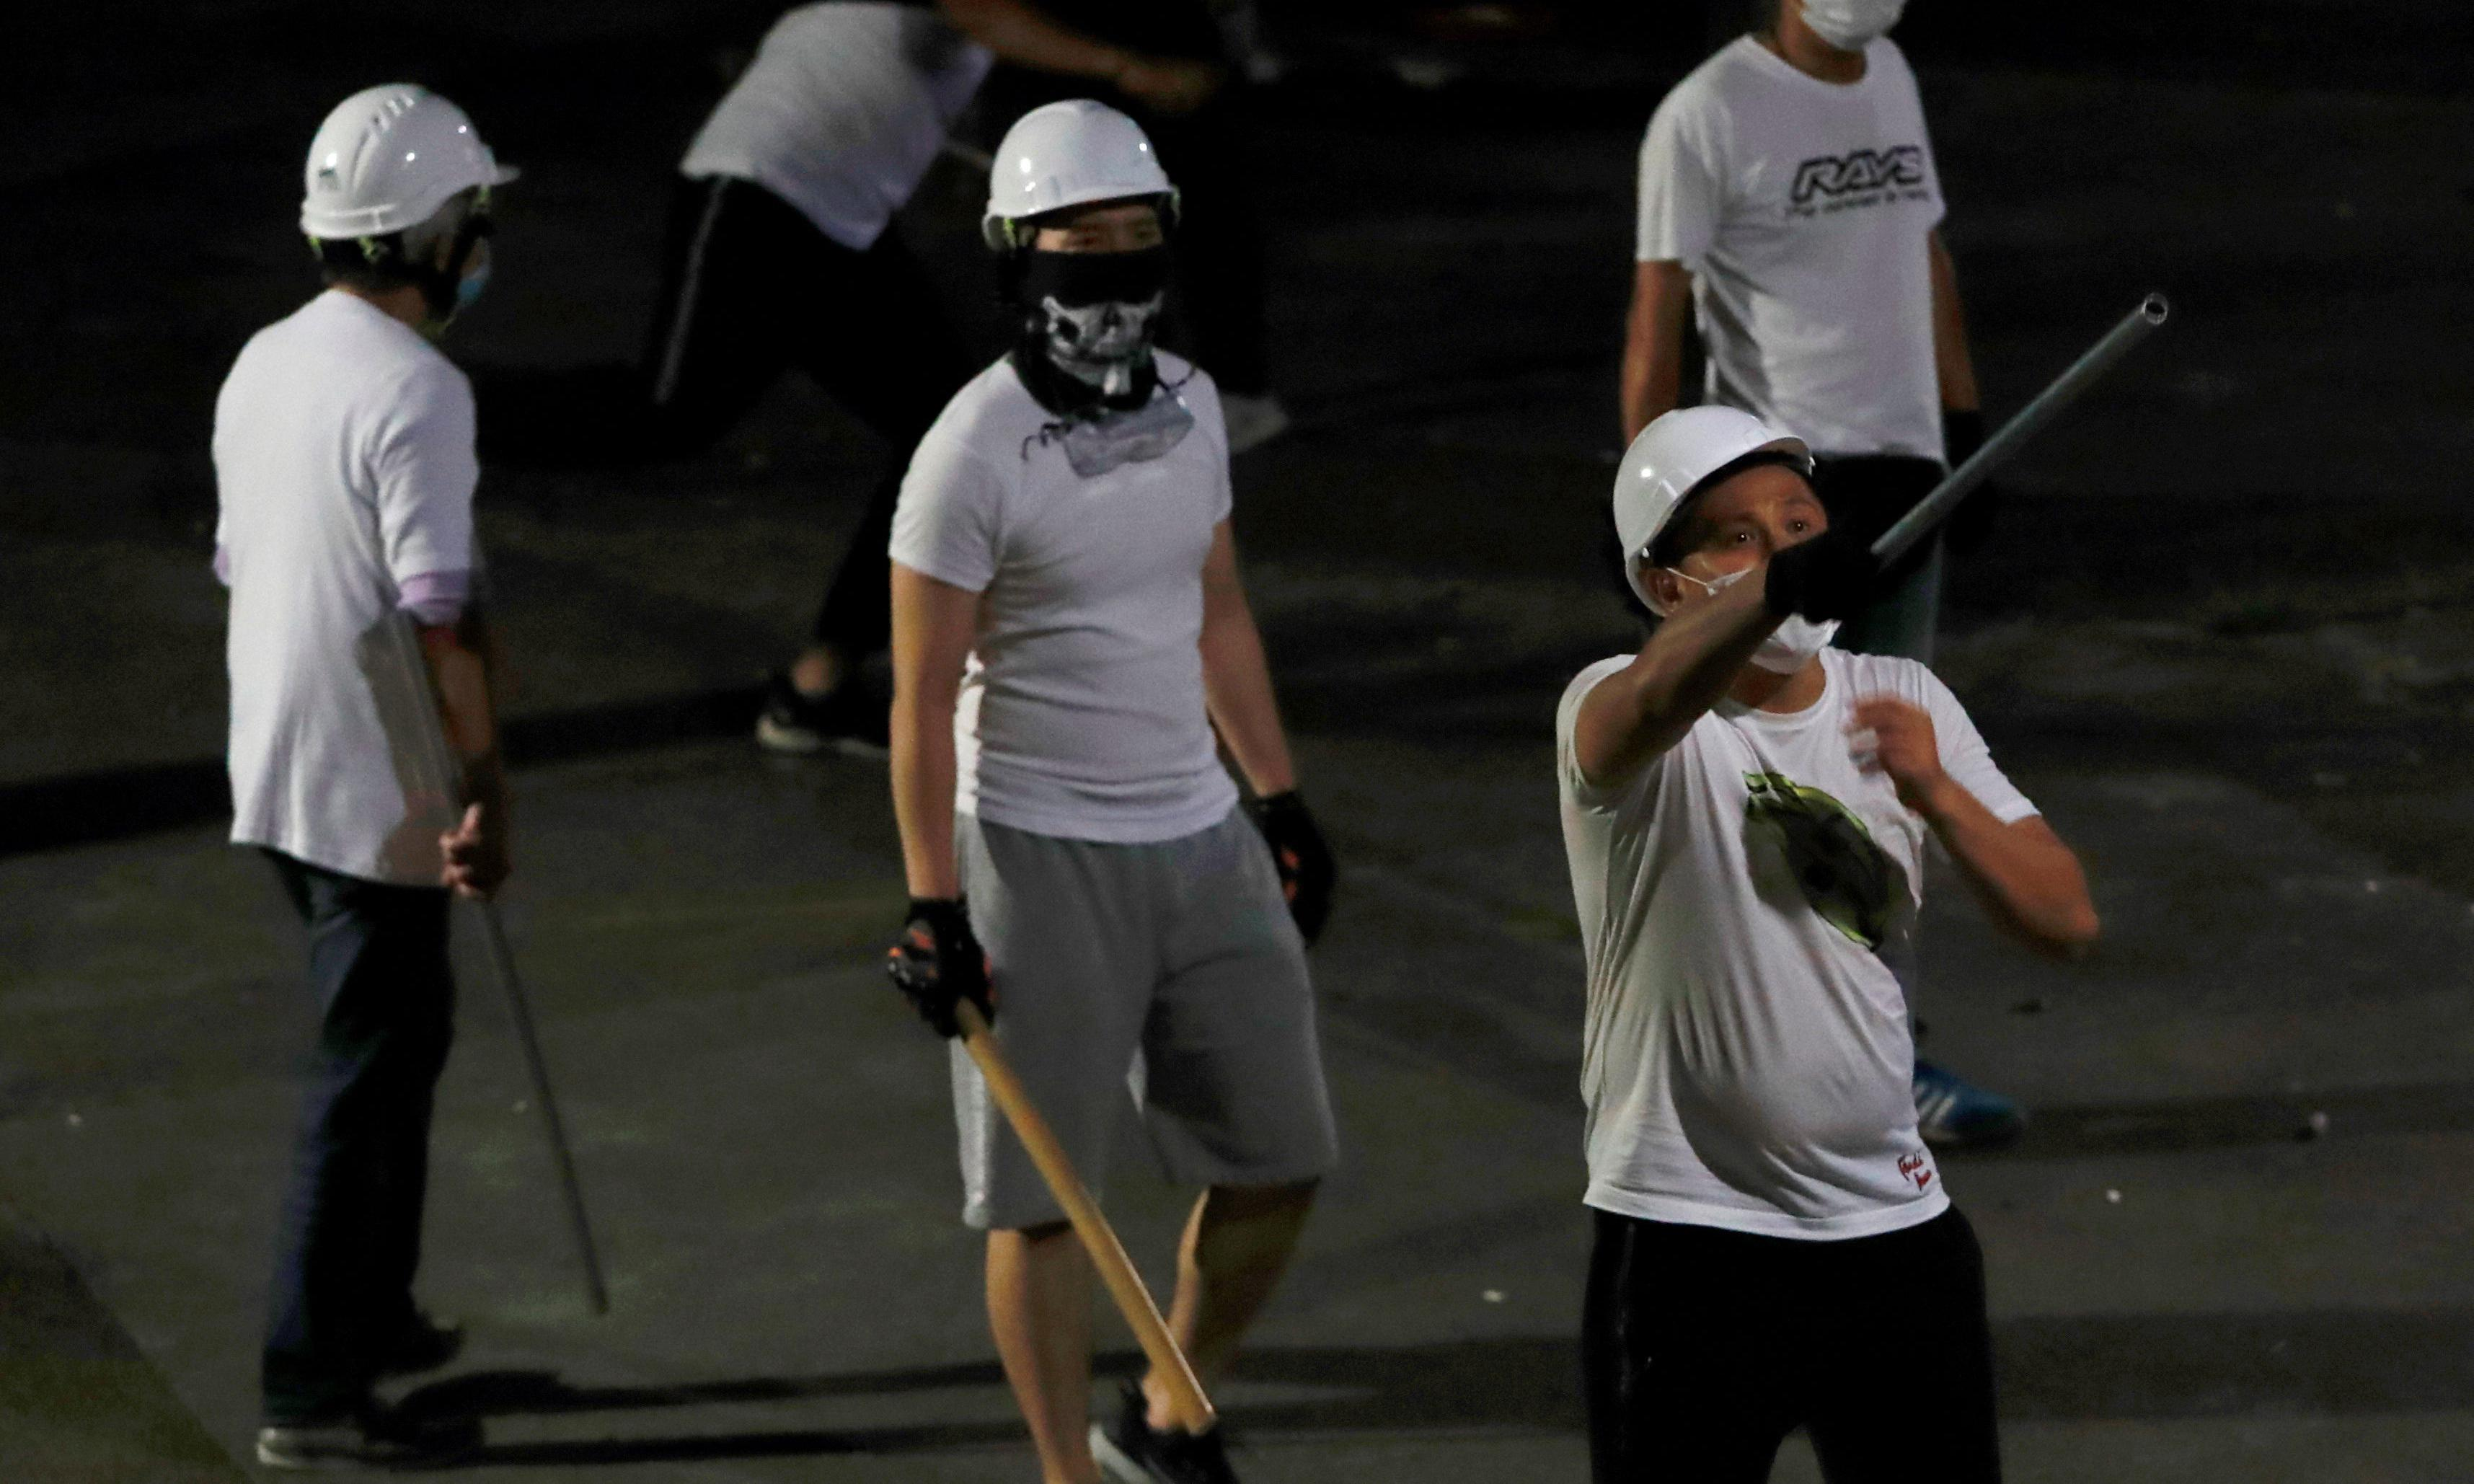 Hong Kong protesters pledge to stand up to thugs after attack